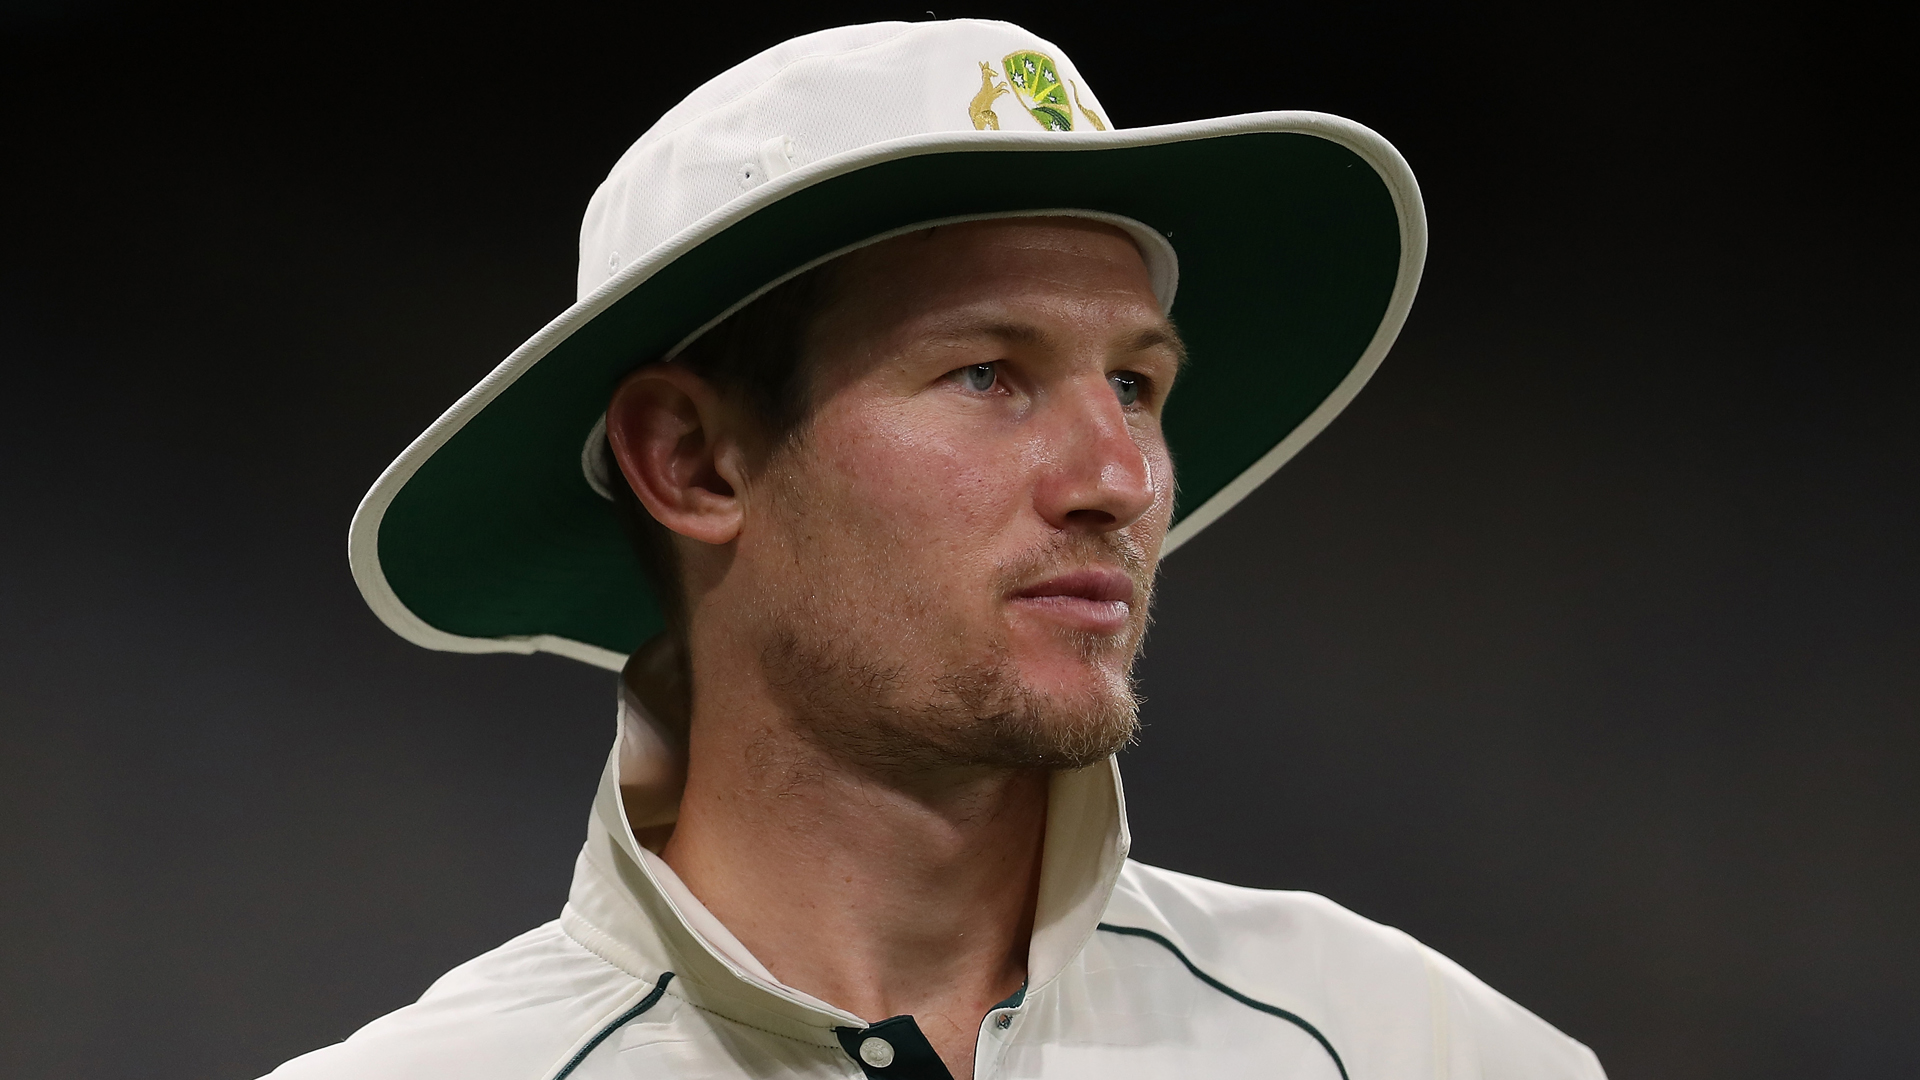 Australia named a 13-man Test squad to face New Zealand, with Cameron Bancroft dropped.